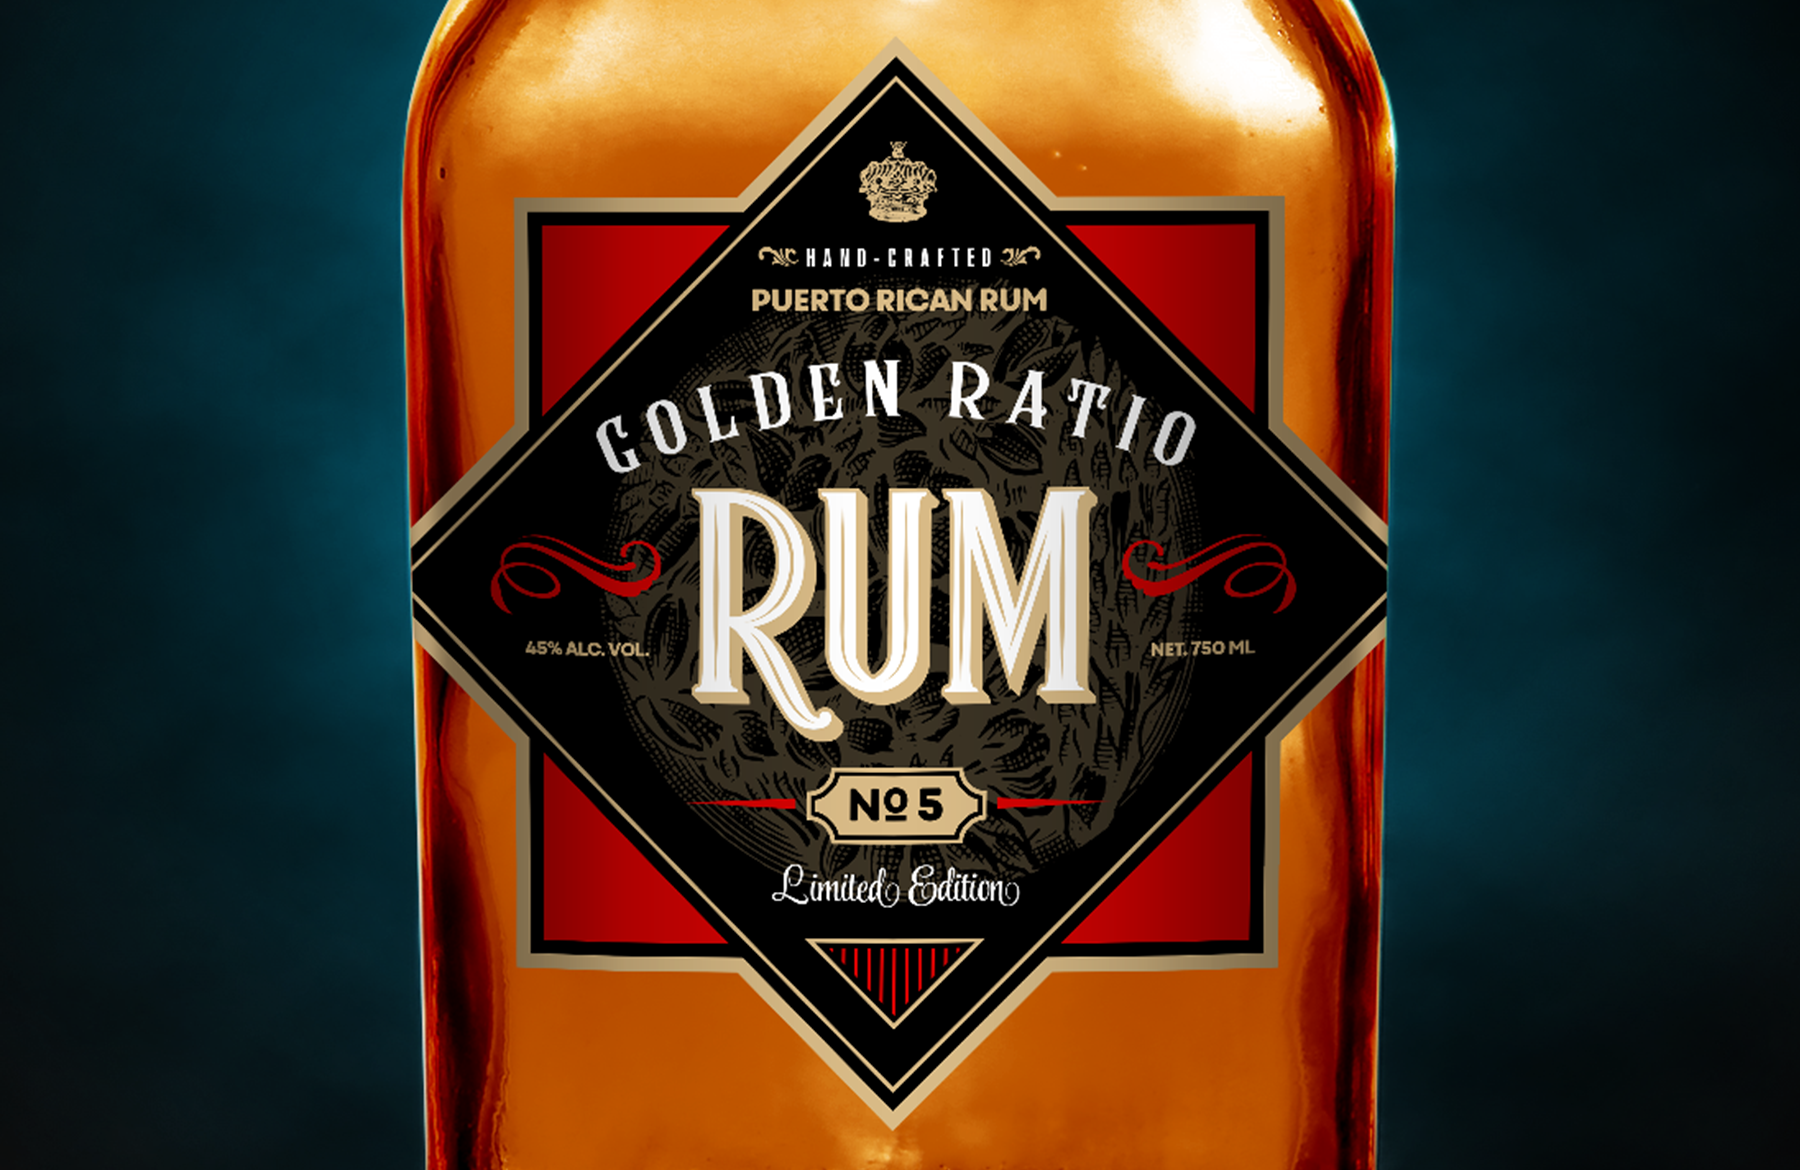 How to create a rum label design in photoshop design cuts create a rum label design in photoshop buycottarizona